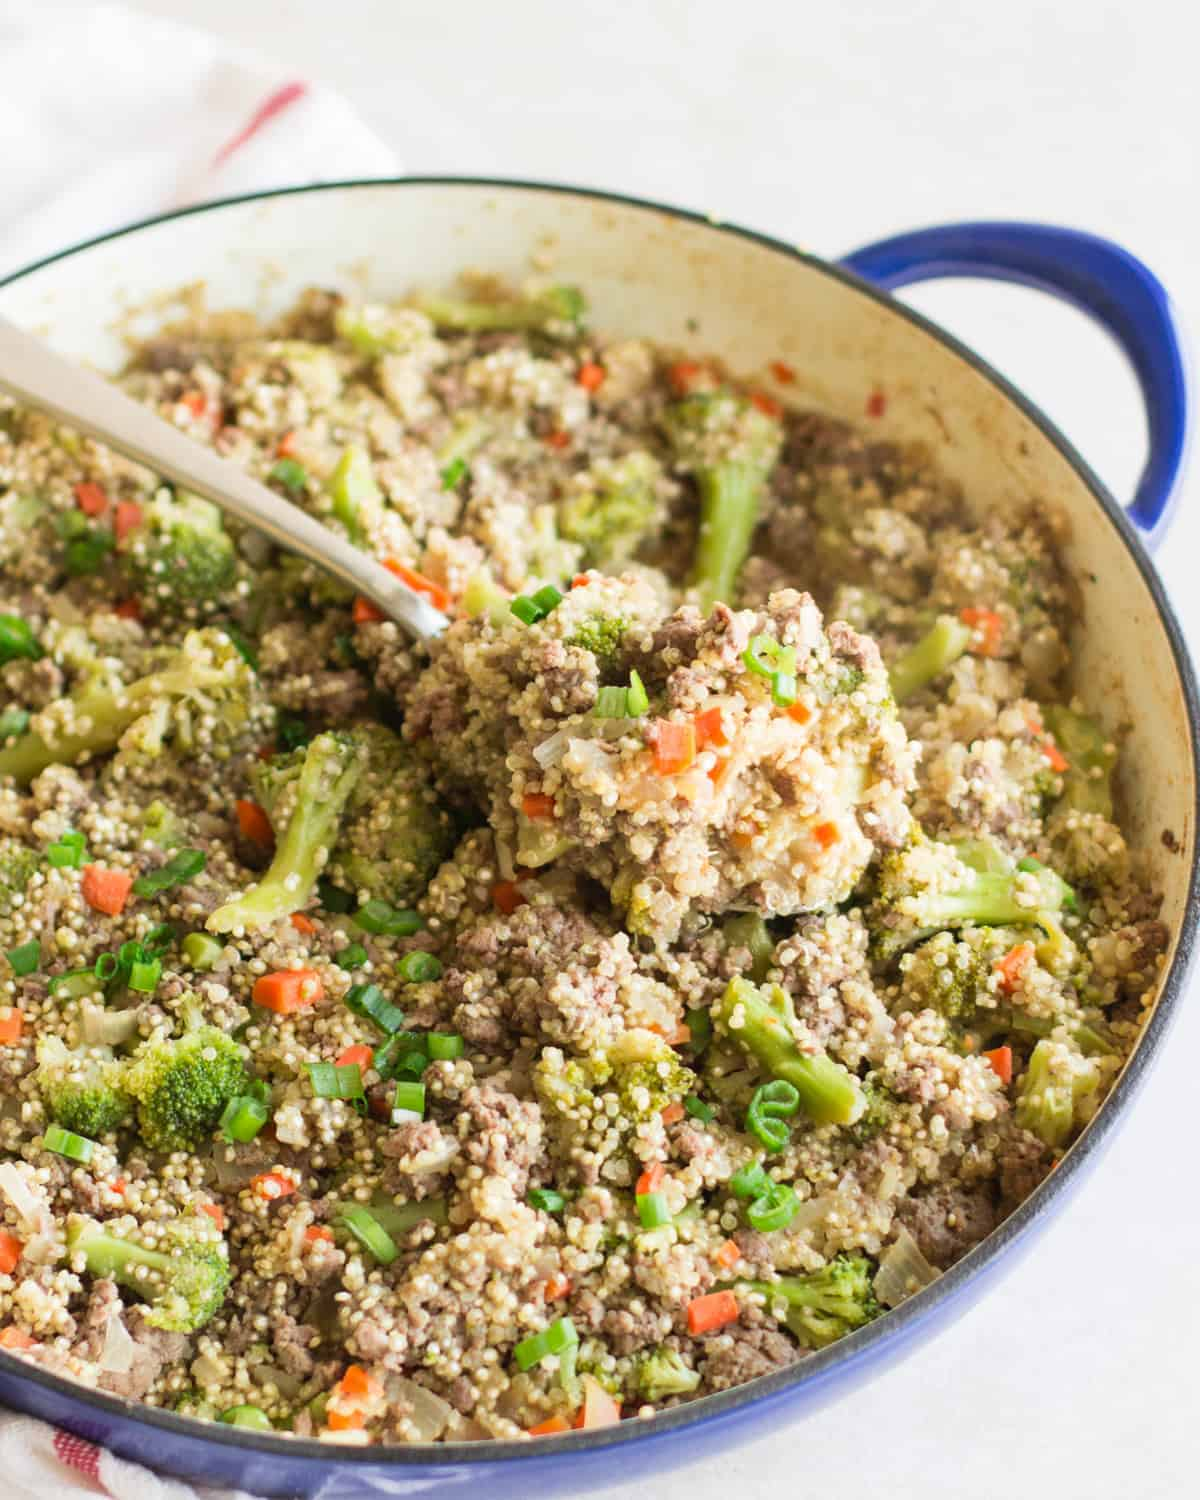 ground beef and broccoli quinoa in a large blue skillet with a small amount scooped onto an orange spatula